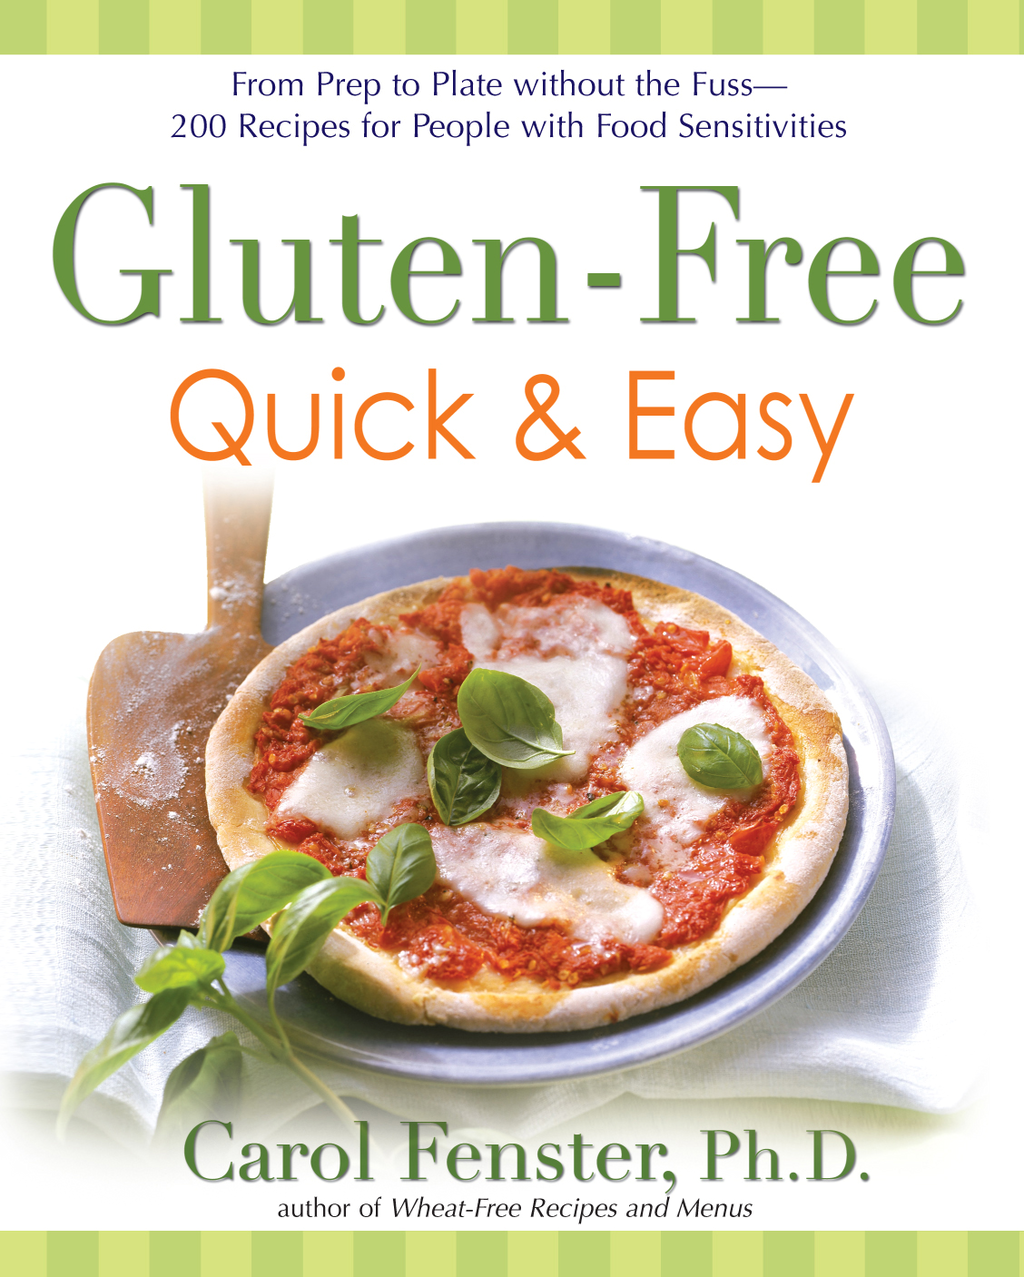 Gluten-Free Quick & Easy: From prep to plate without thefuss-200+recipes for people with food sensitivities